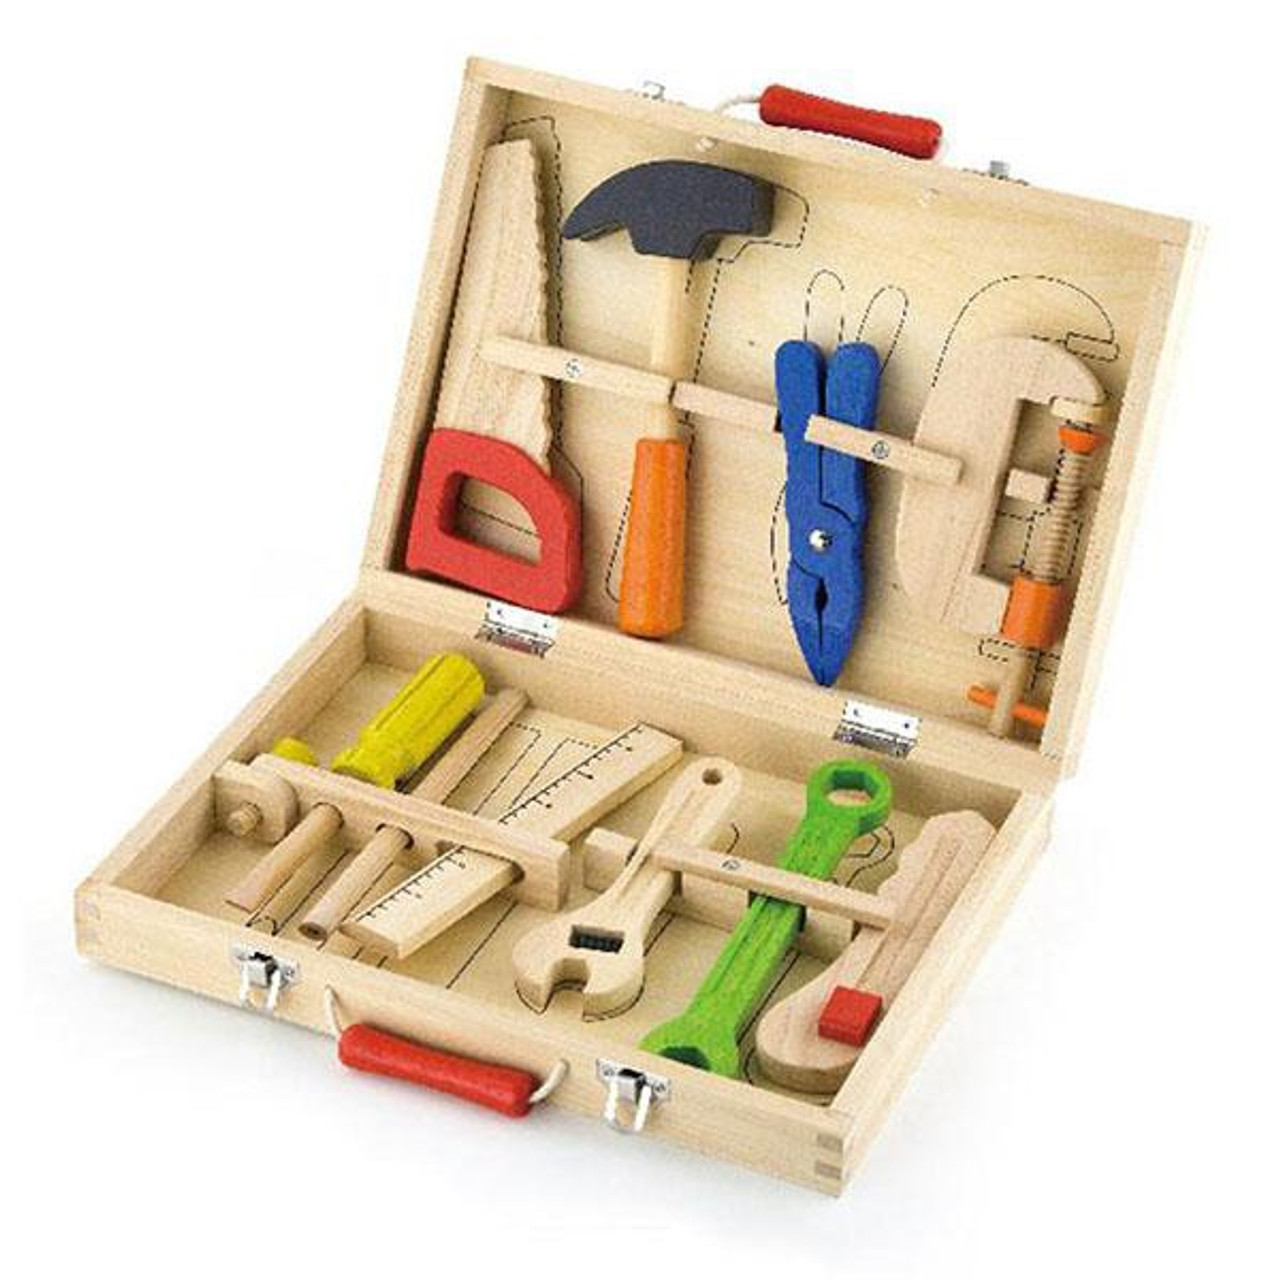 Viga Tool Box 10pcs at Baby Barn Discounts Tool Box set from Viga Toys will have your little carpenter at work in no time!